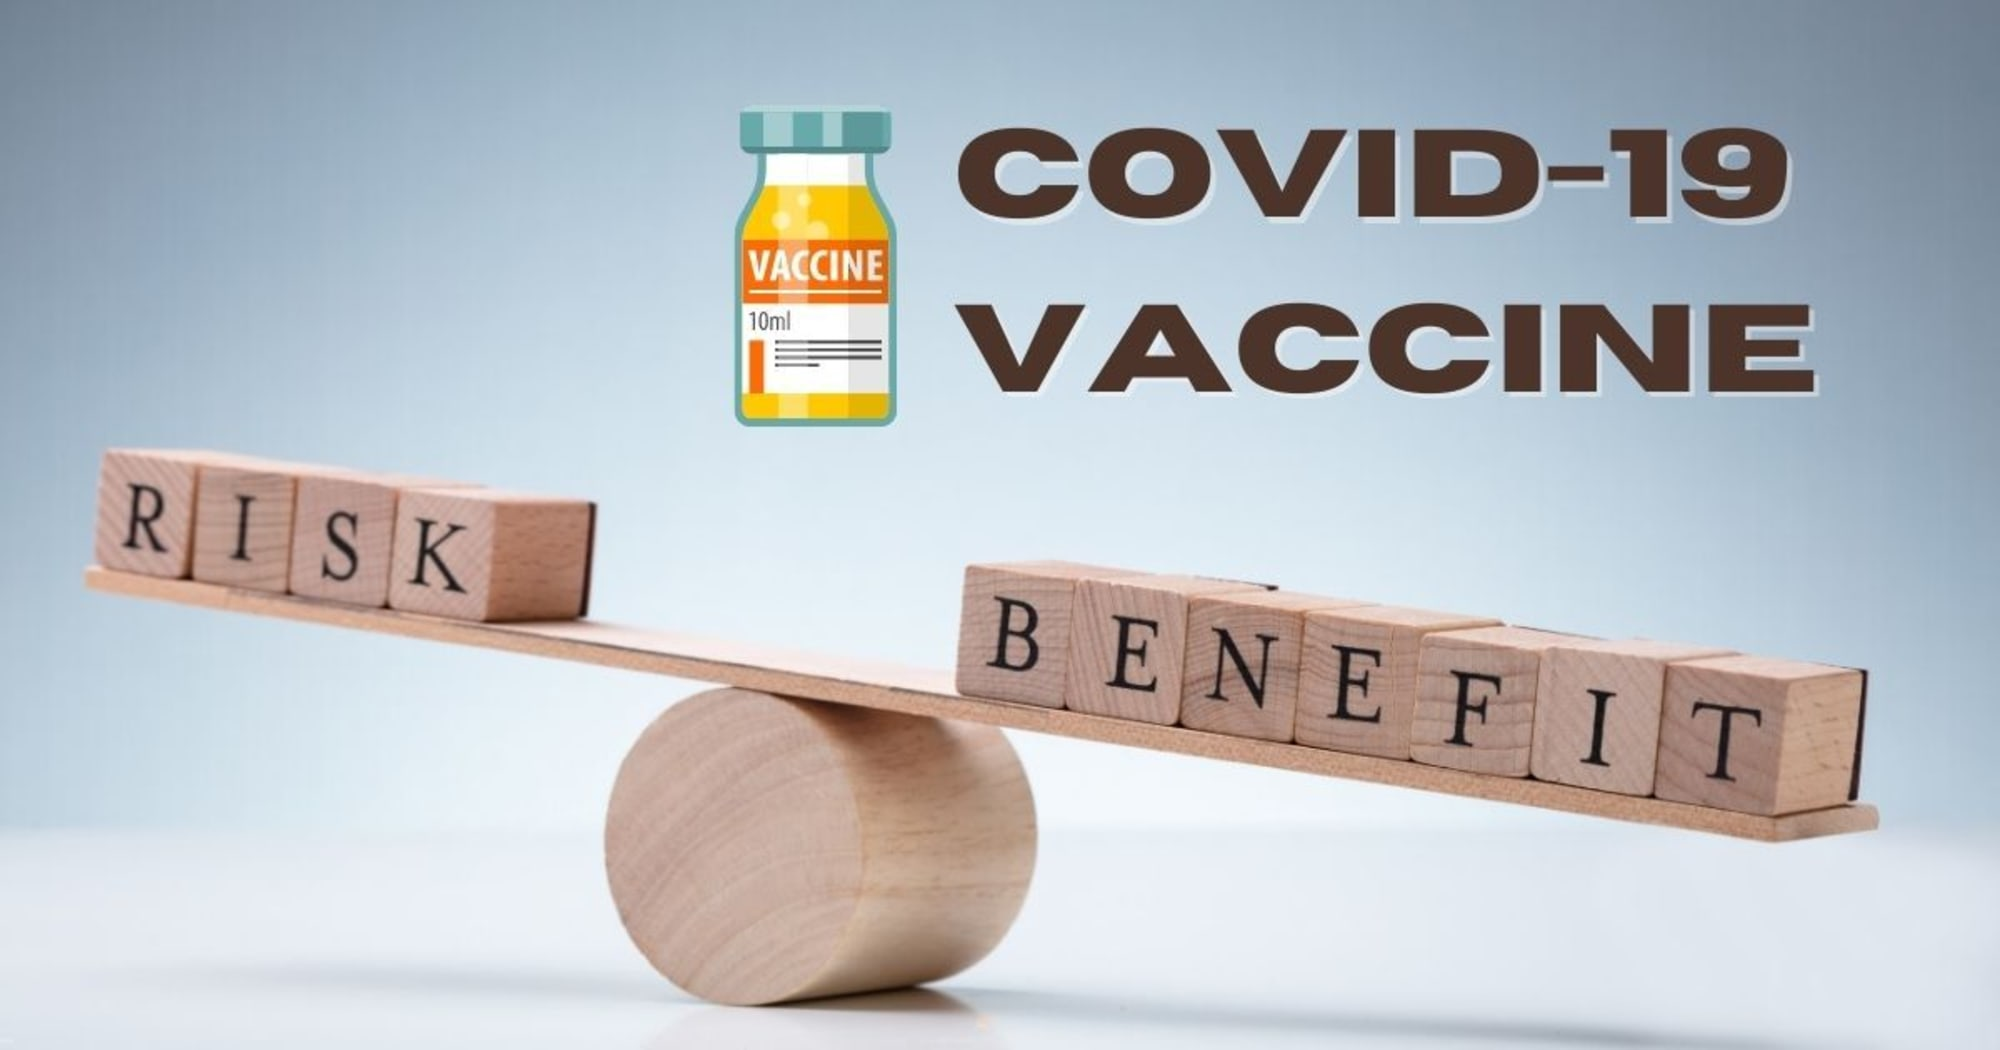 A balancing act between benefits and risks: making sense of the latest vaccine news